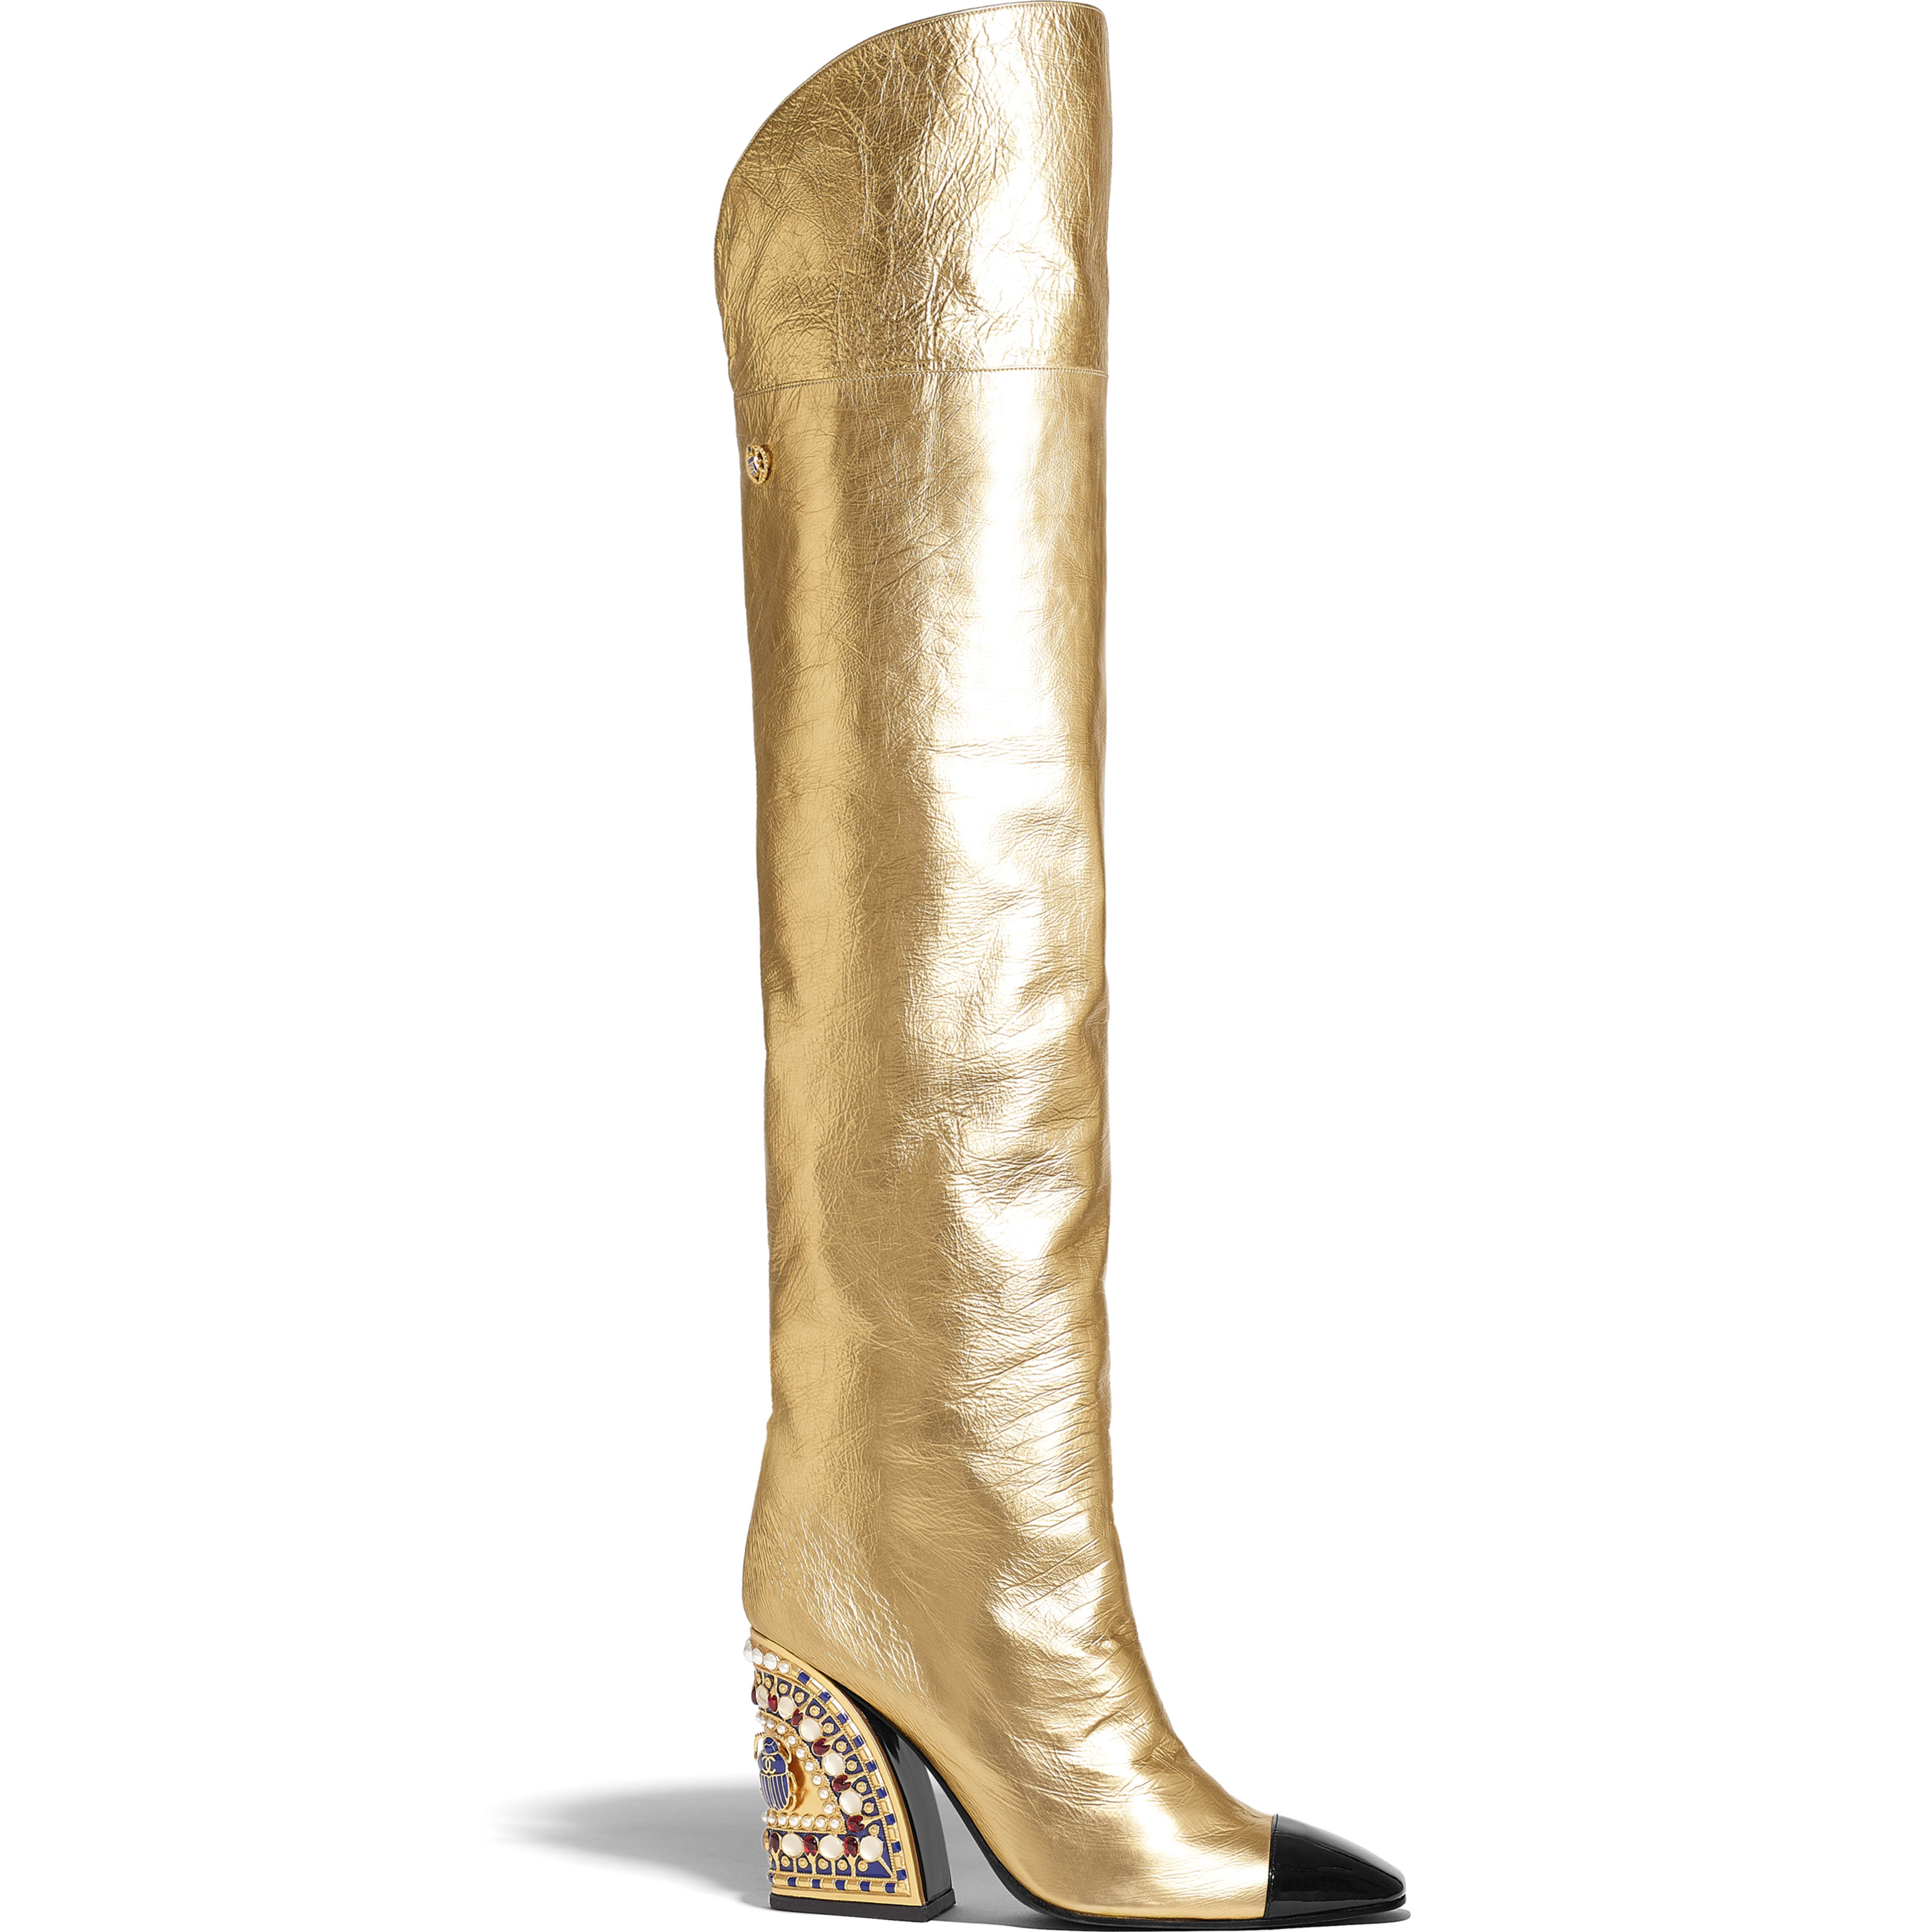 High Boots - Gold & Black - Laminated Lambskin & Patent Calfskin - Default view - see full sized version